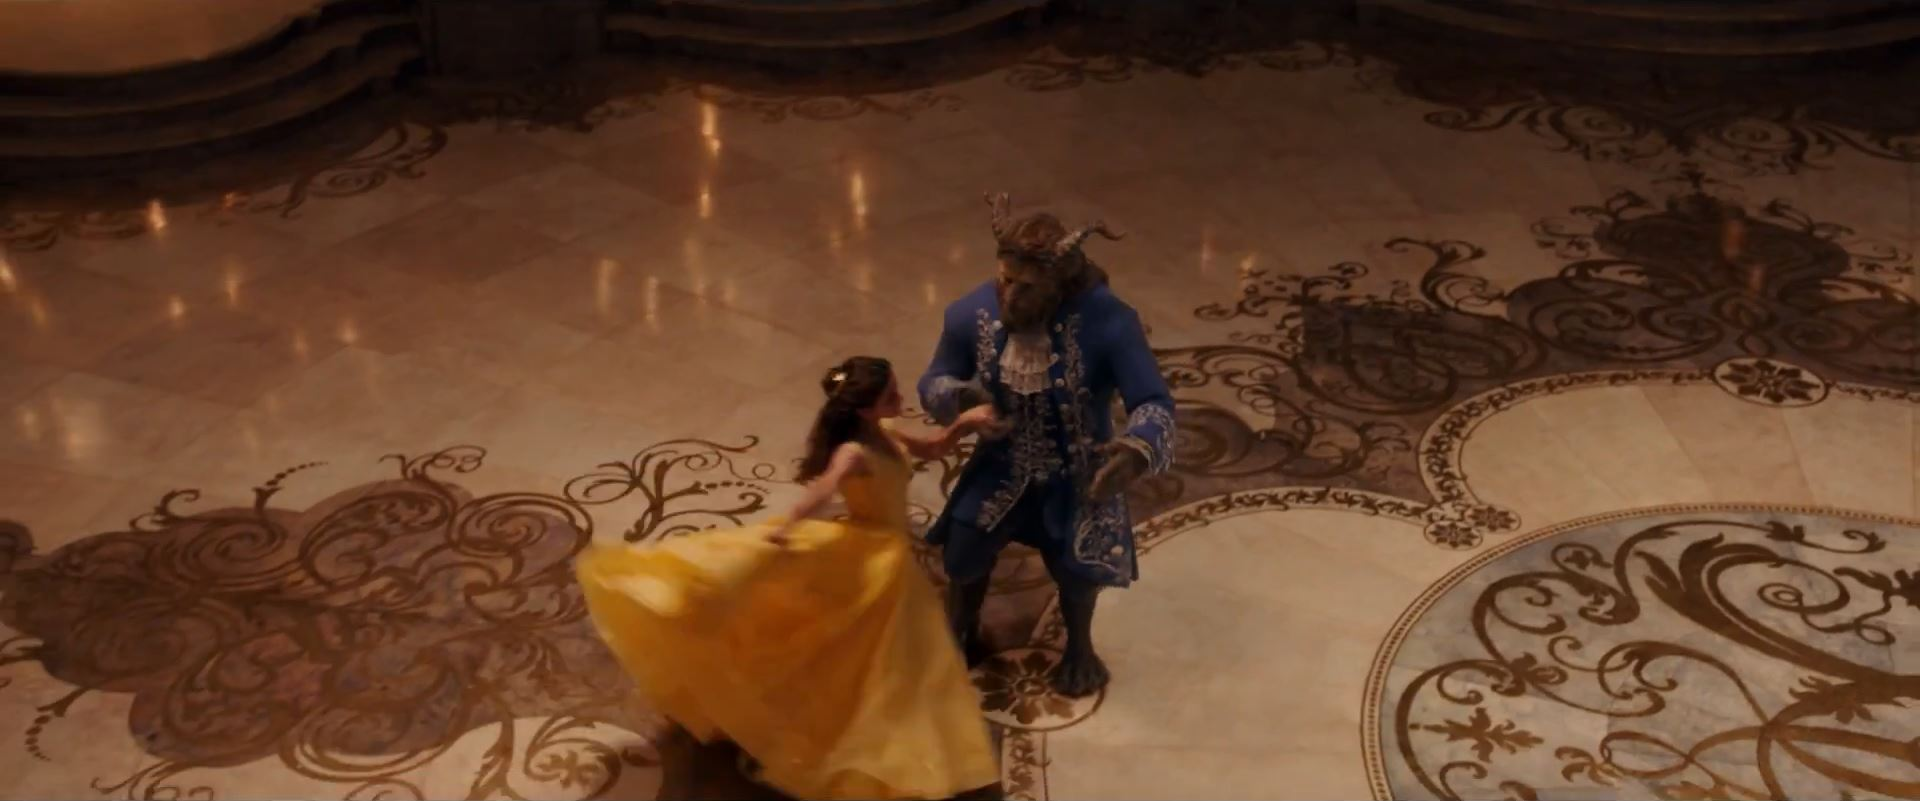 Emma Watson yellow ball gown in Beauty and the Beast